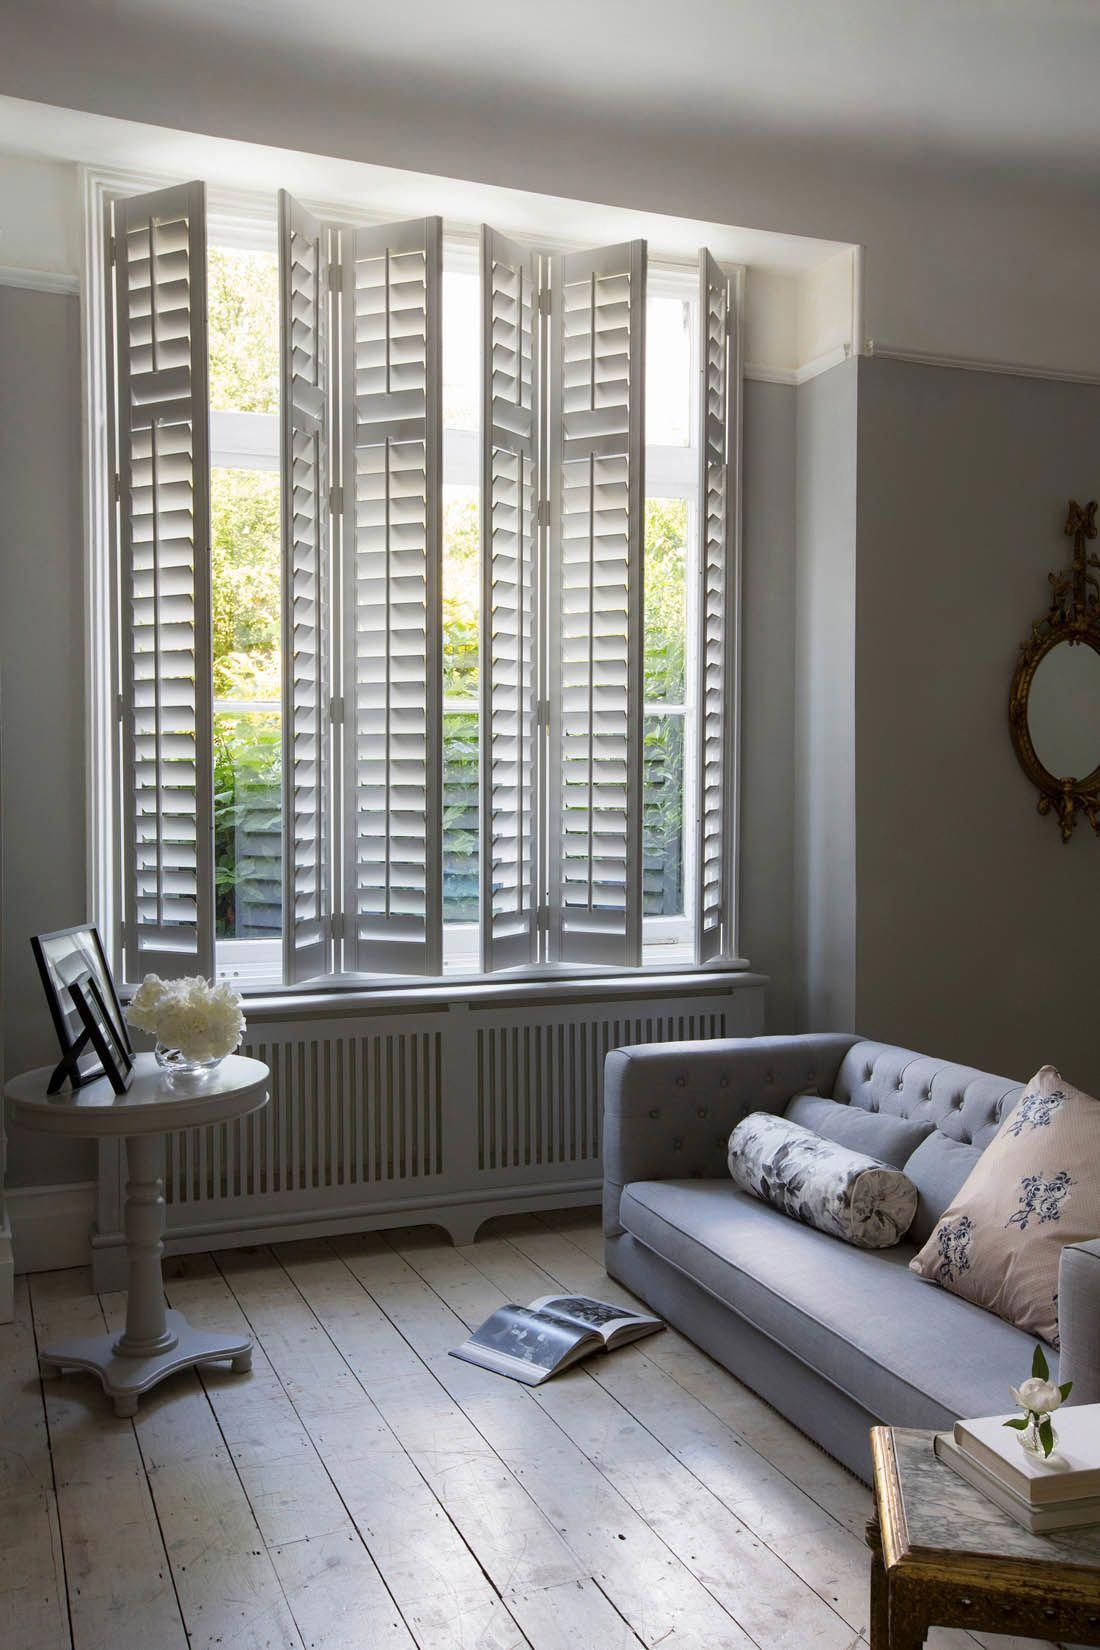 Full Height Interior Wooden Shutters In Living Room Making The Most Of Your Windows Lu Living Room Blinds Window Treatments Living Room Living Room Windows #shutters #for #living #room